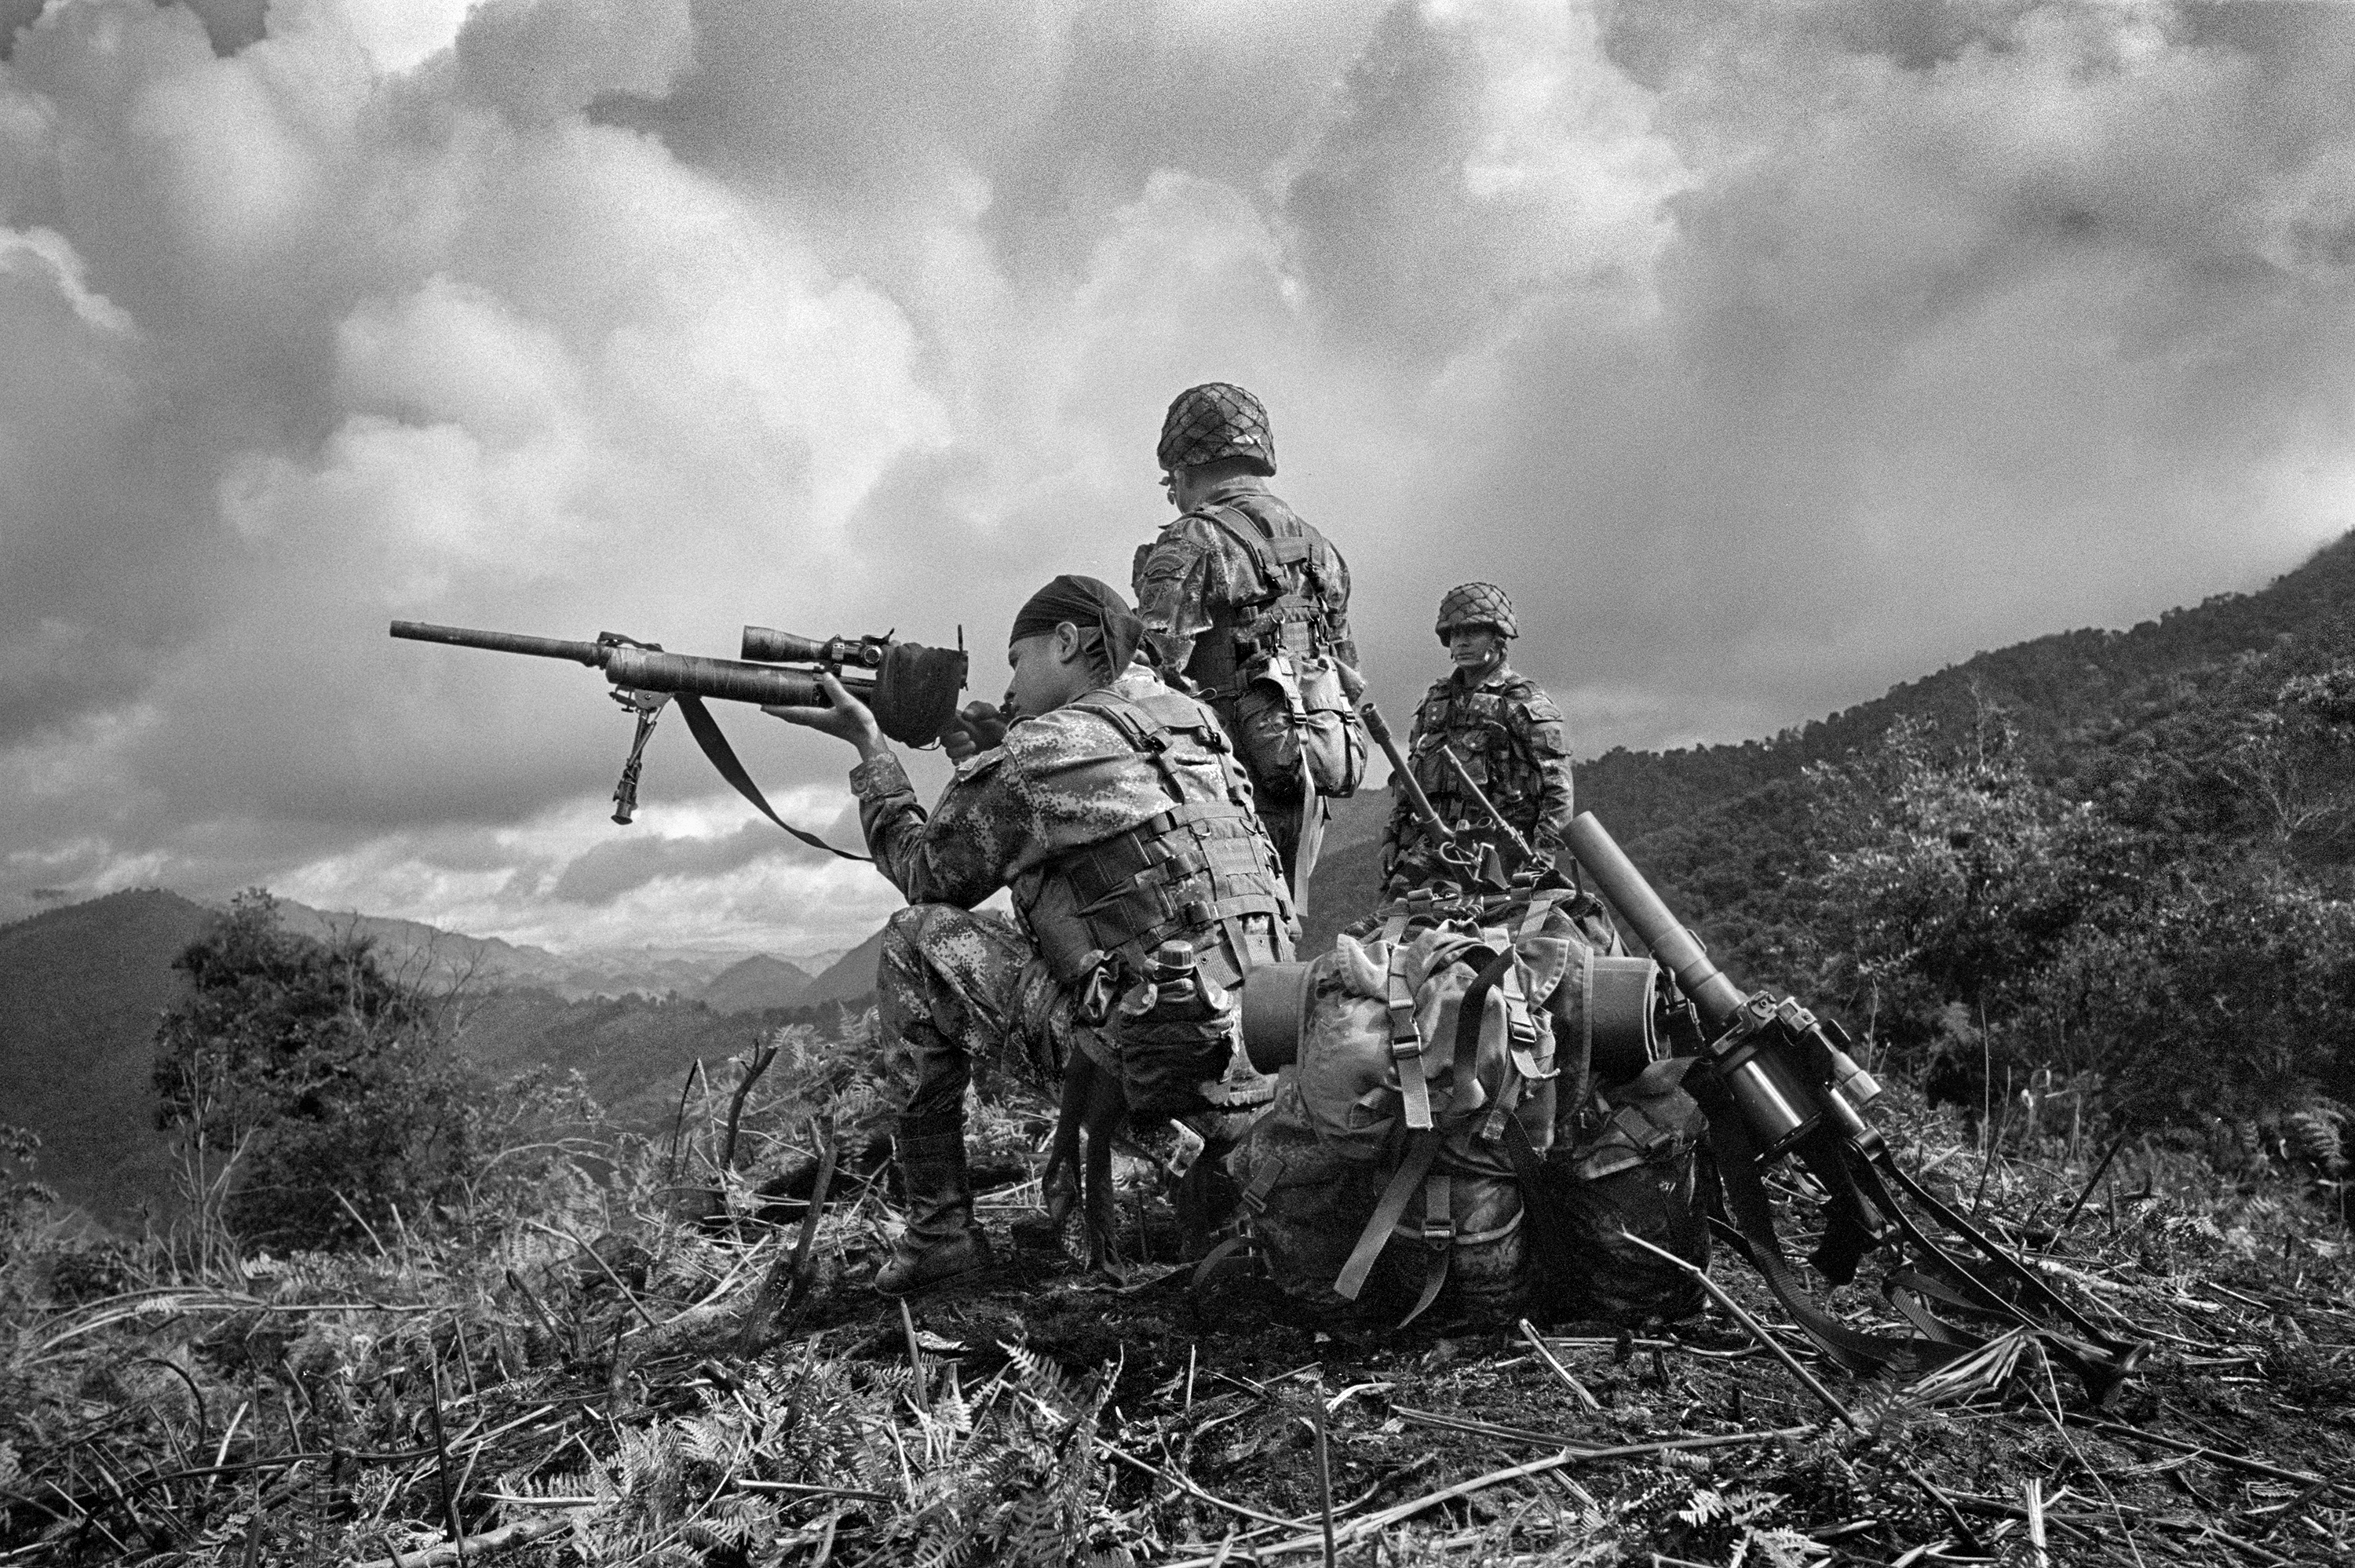 Soldiers of the Mobile Brigade No. 8 of the Joint Task Force South of Tolima during a military operation against  FARC in a village in the municipality of Planadas, southern Tolima. Planadas has been a major historical stronghold of FARC in Colombia, May 2011.